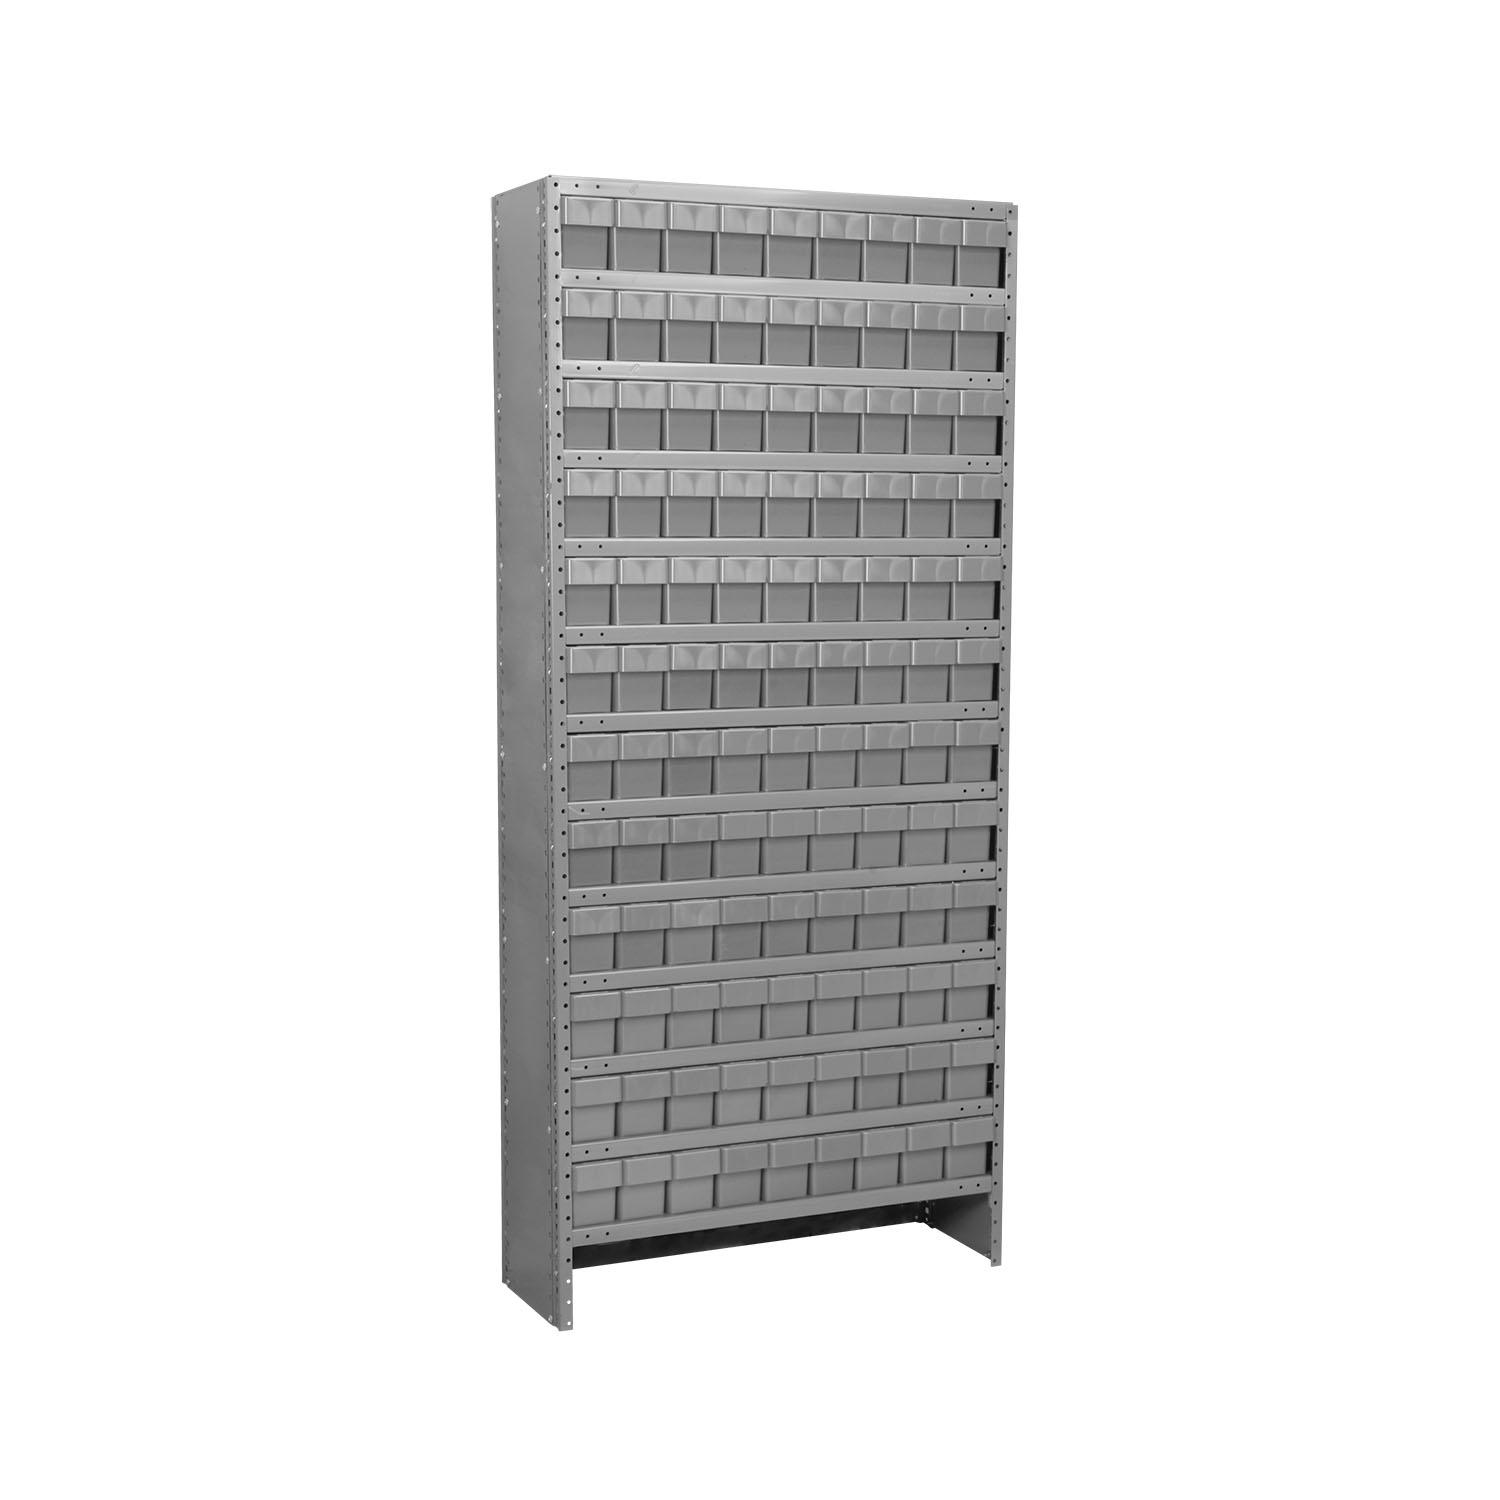 Akro-Mils Enclosed Steel Shelving Kit 13 Shelves12x36x79, 108 AkroDrawers Gray/Gray